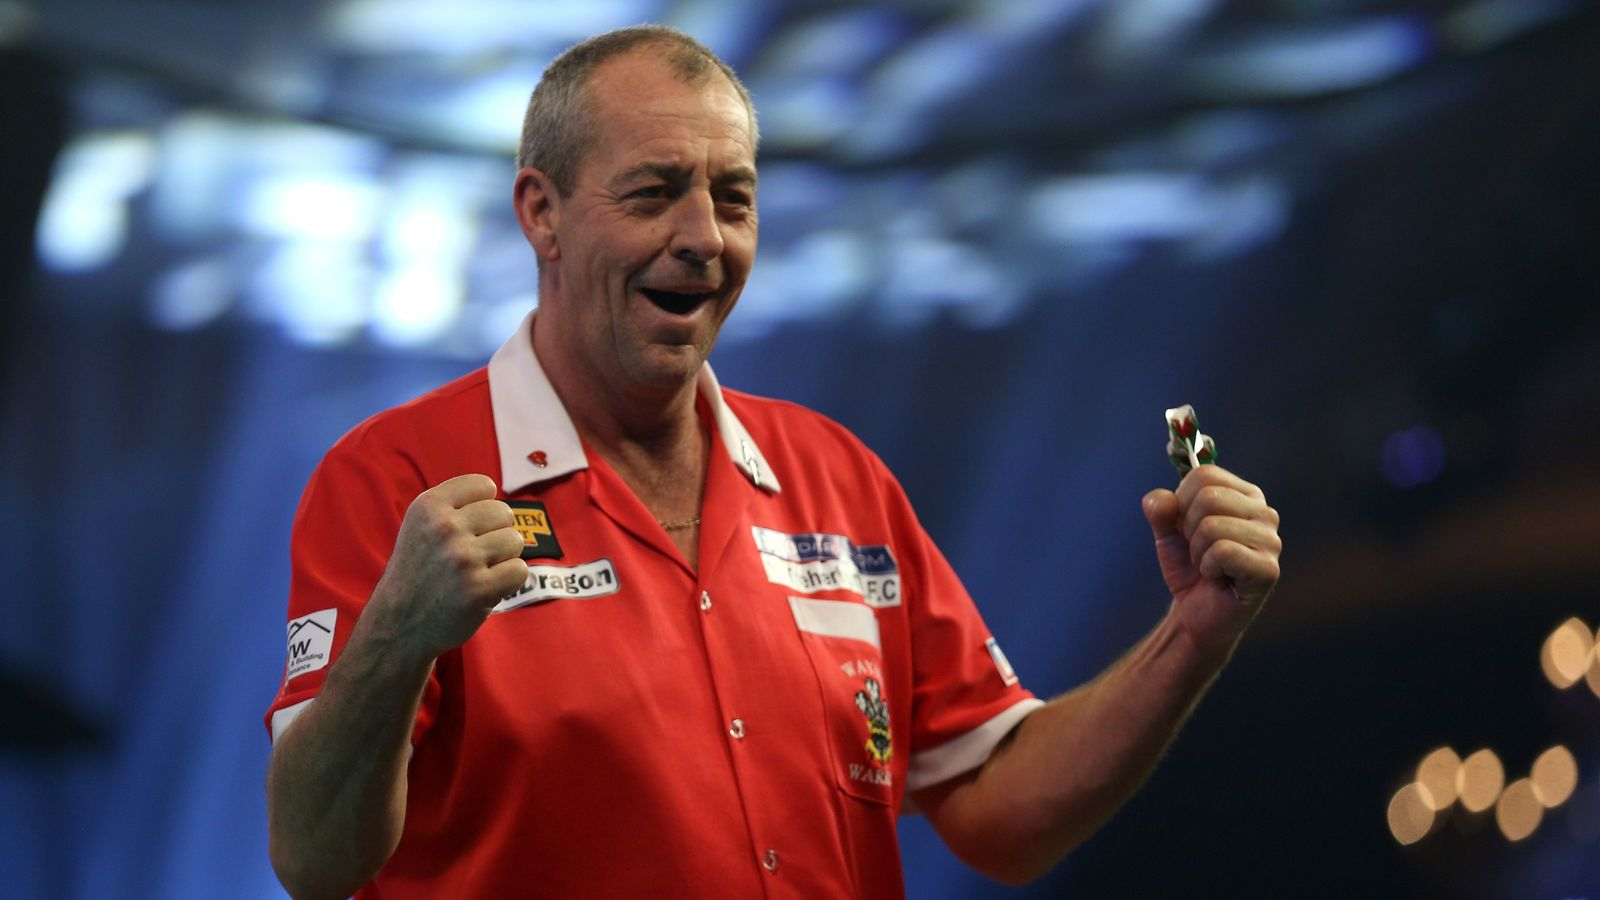 Wayne Warren reflects on a rollercoaster year ahead of his competitive return at the Grand Slam